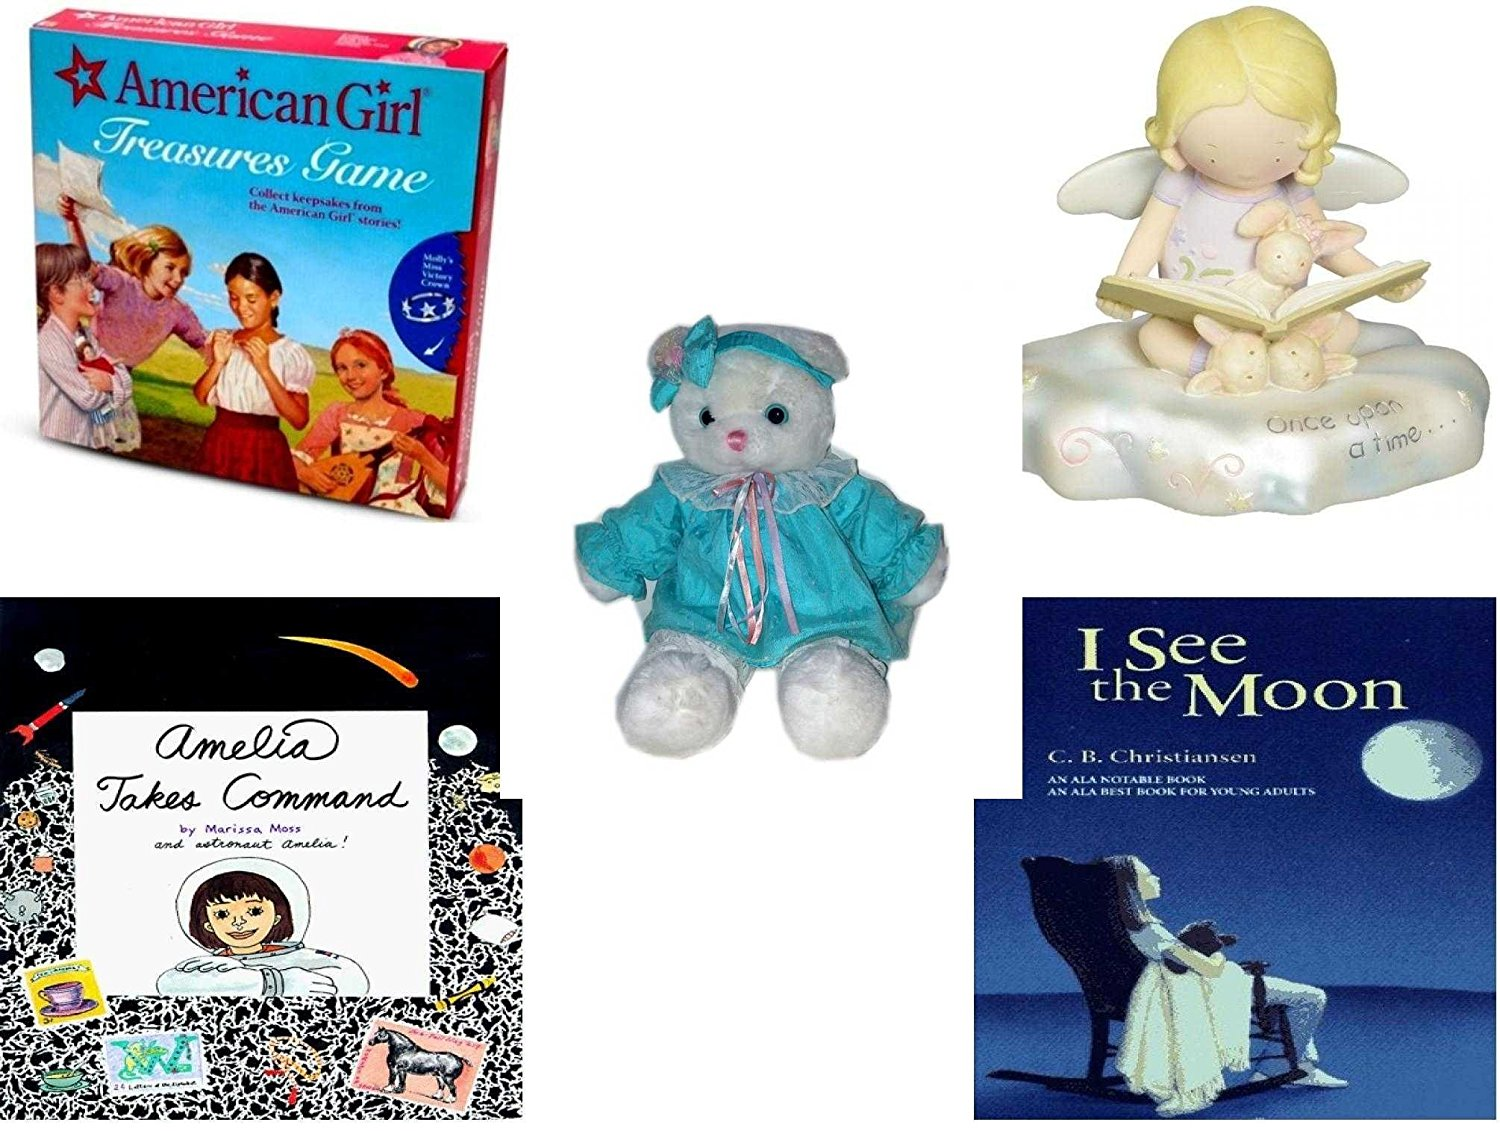 """Girl's Gift Bundle - Ages 6-12 [5 Piece] - American Girl Treasures Game - Cutie Patootie Storytime Angel Figurine - TB Trading Baby Girl White Teddy Bear Plush 16"""" - The All-New Amelia Hardcover Boo"""